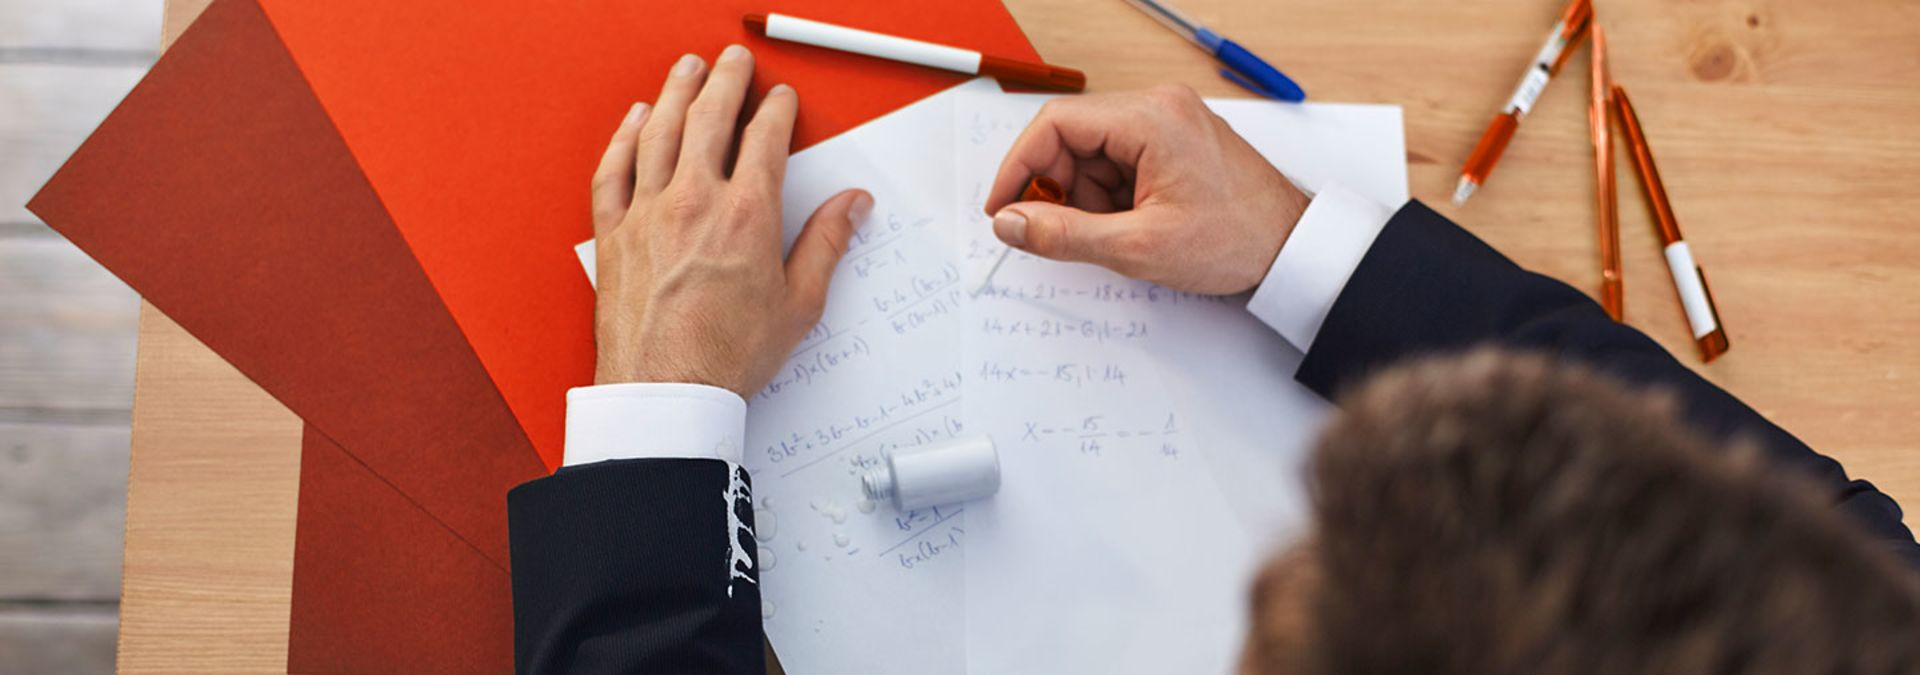 A man is correcting document with correction fluid